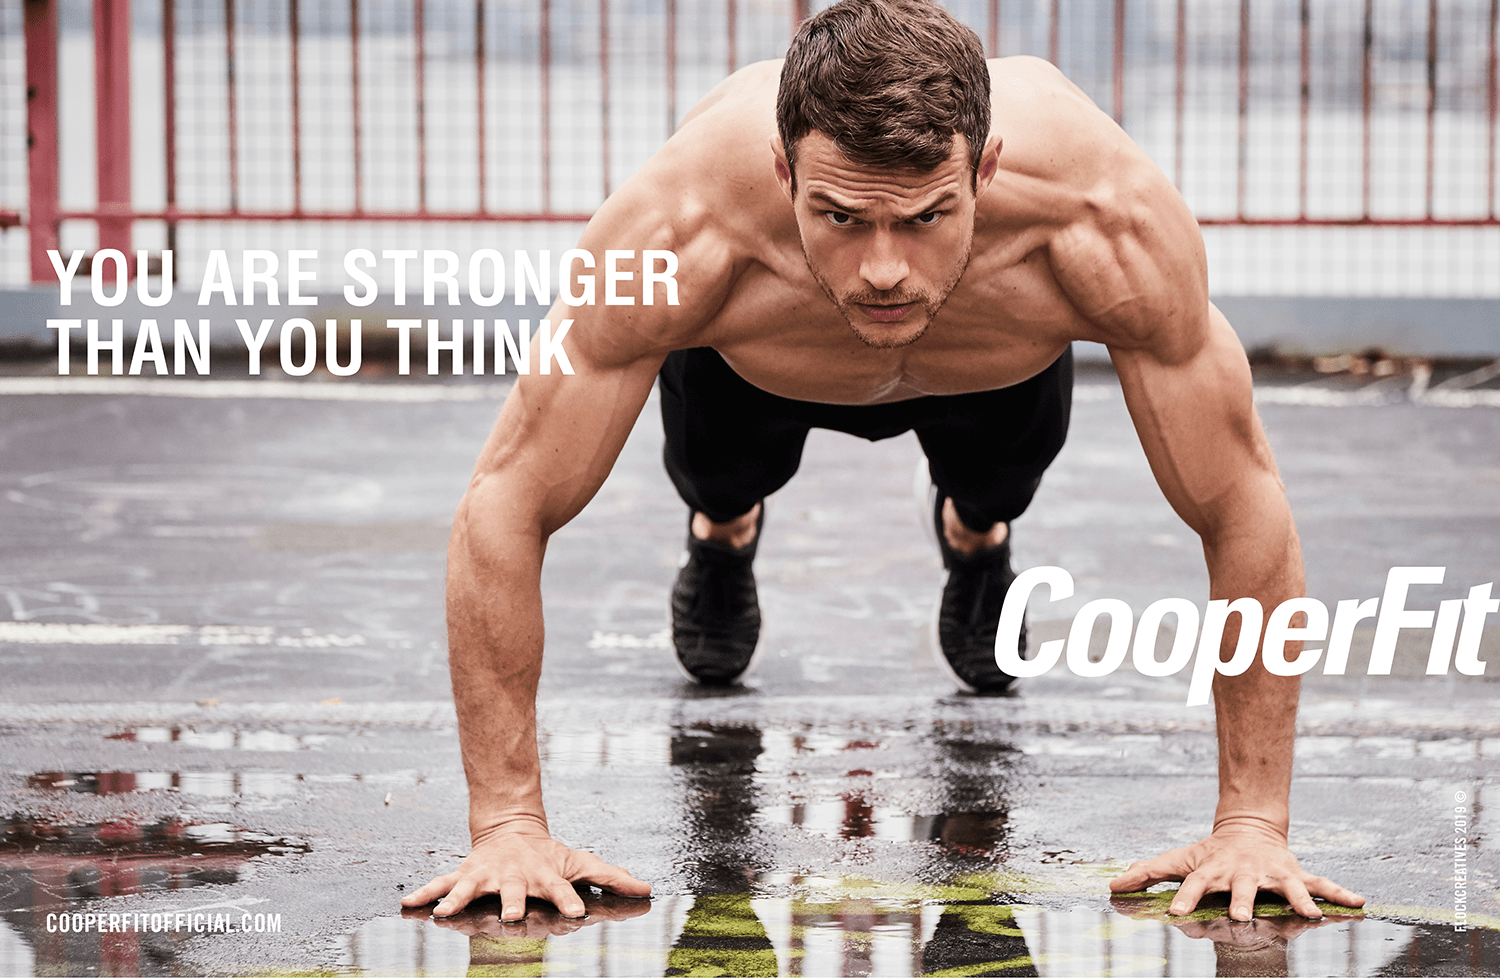 CooperFit_Campaign